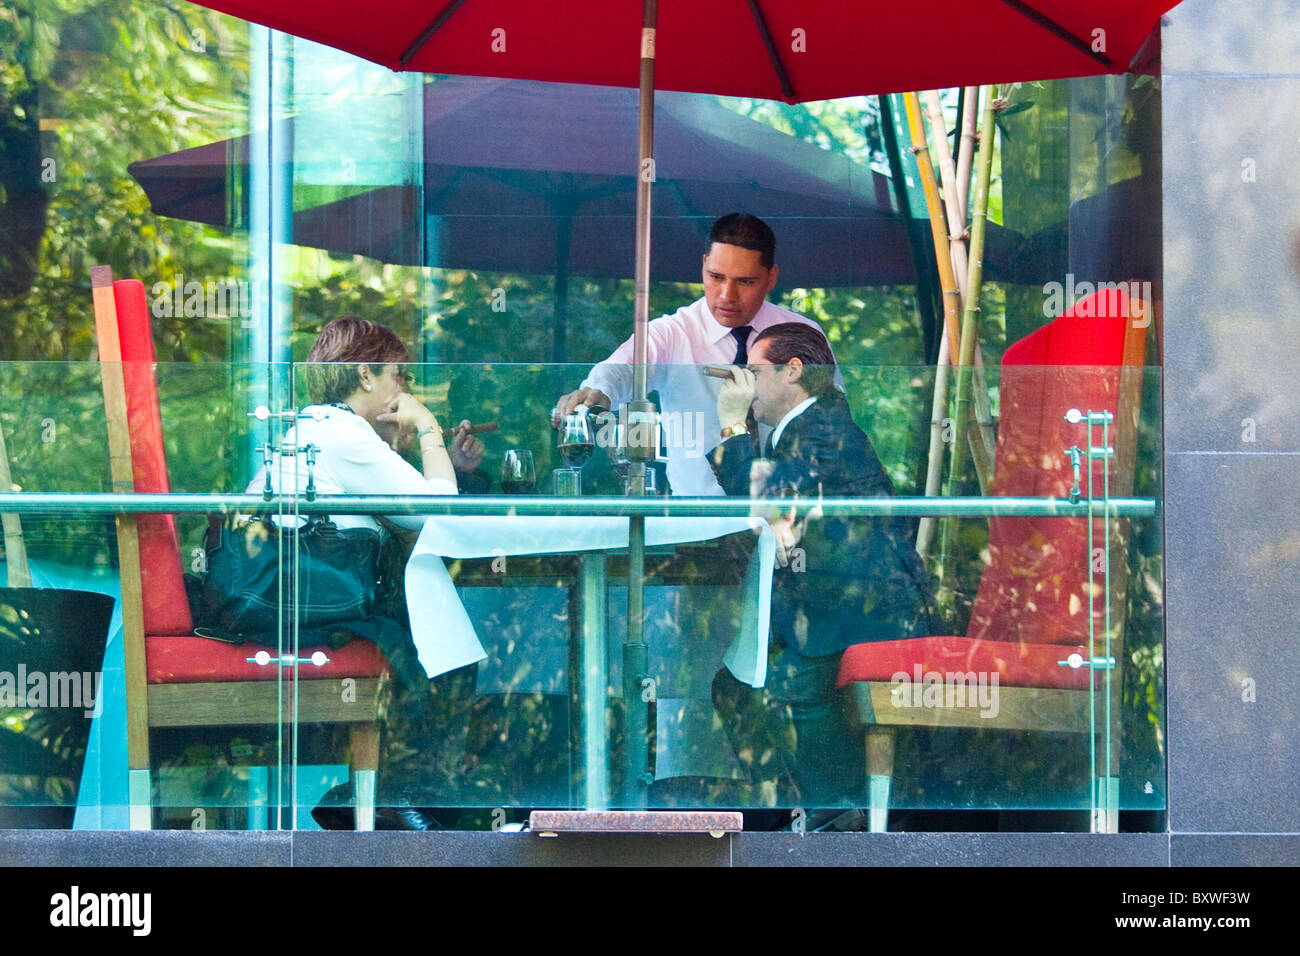 Upscale restaurant in Mexico City, Mexico - Stock Image